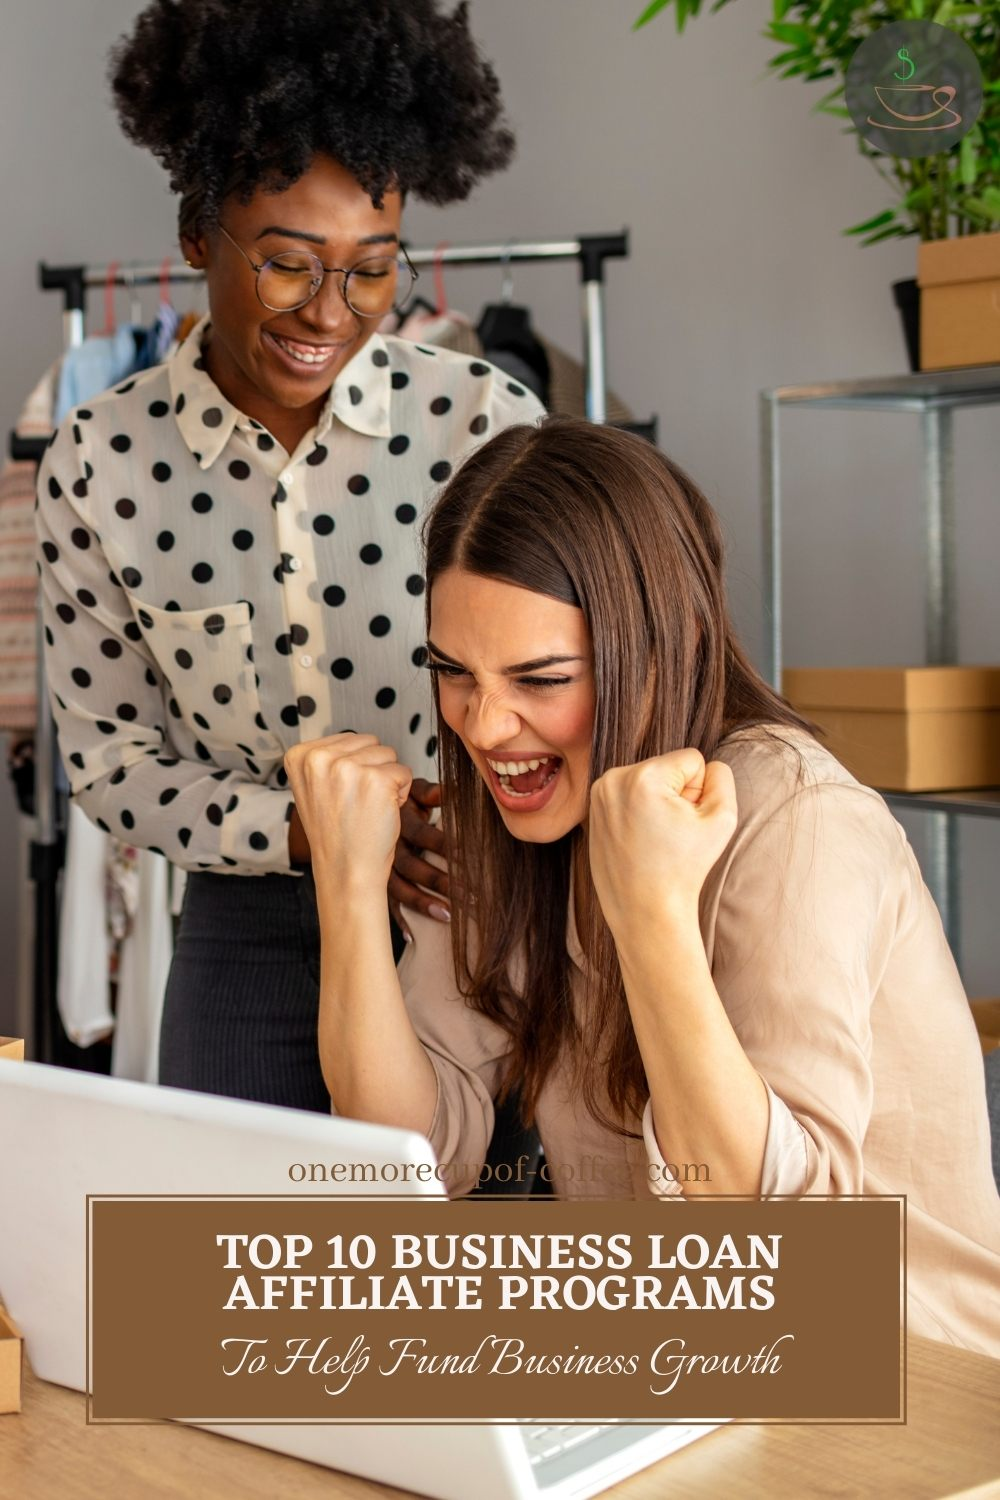 """image of two business woman, being cheerful while looking at the laptop on the table; with text overlay """"Top 10 Business Loan Affiliate Programs To Help Fund Business Growth"""""""